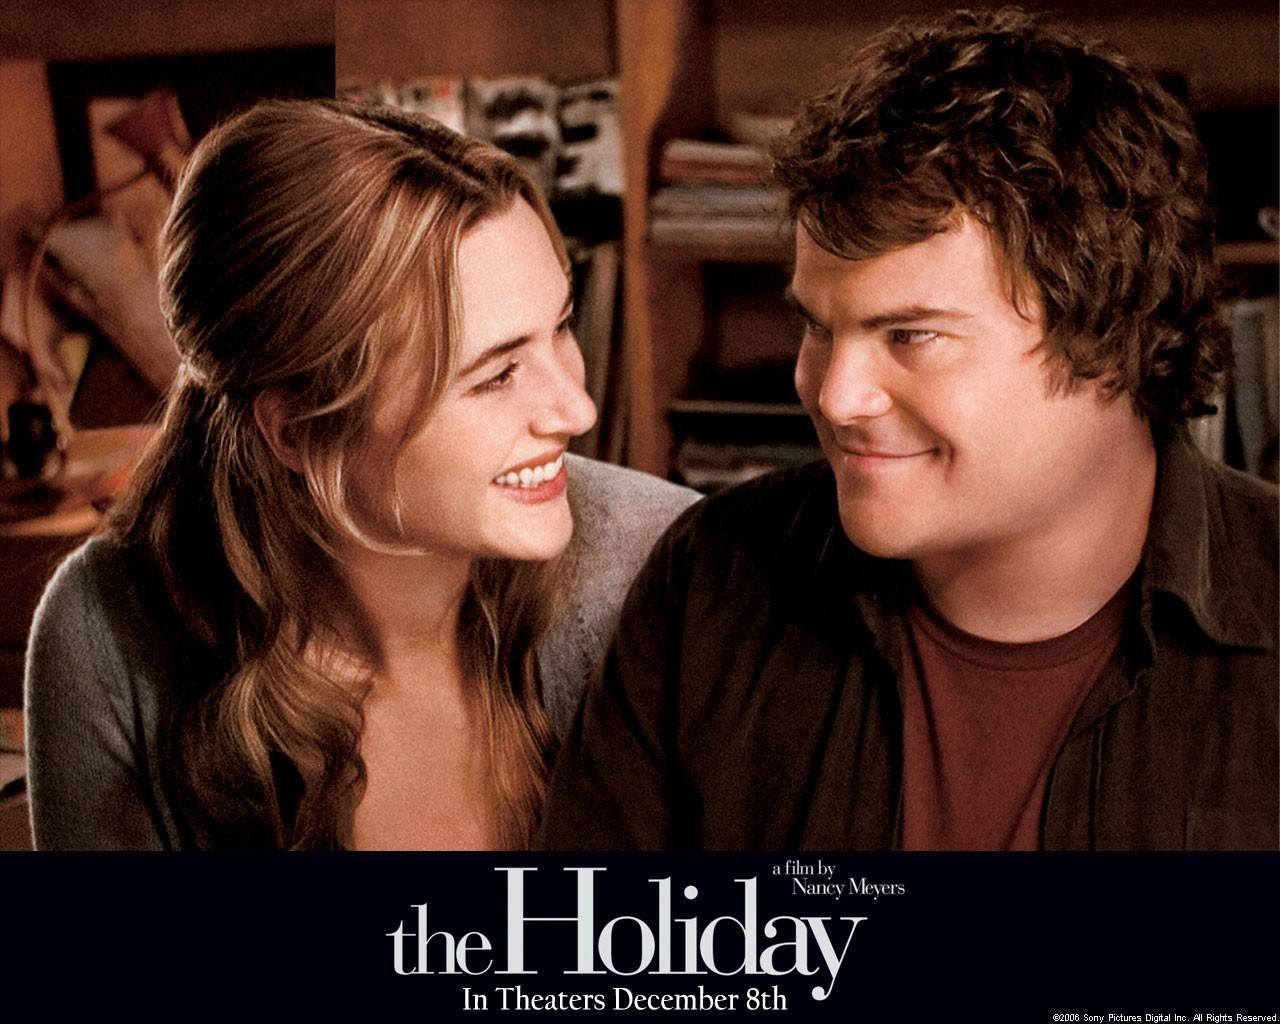 Обои The Holiday 1280x1024